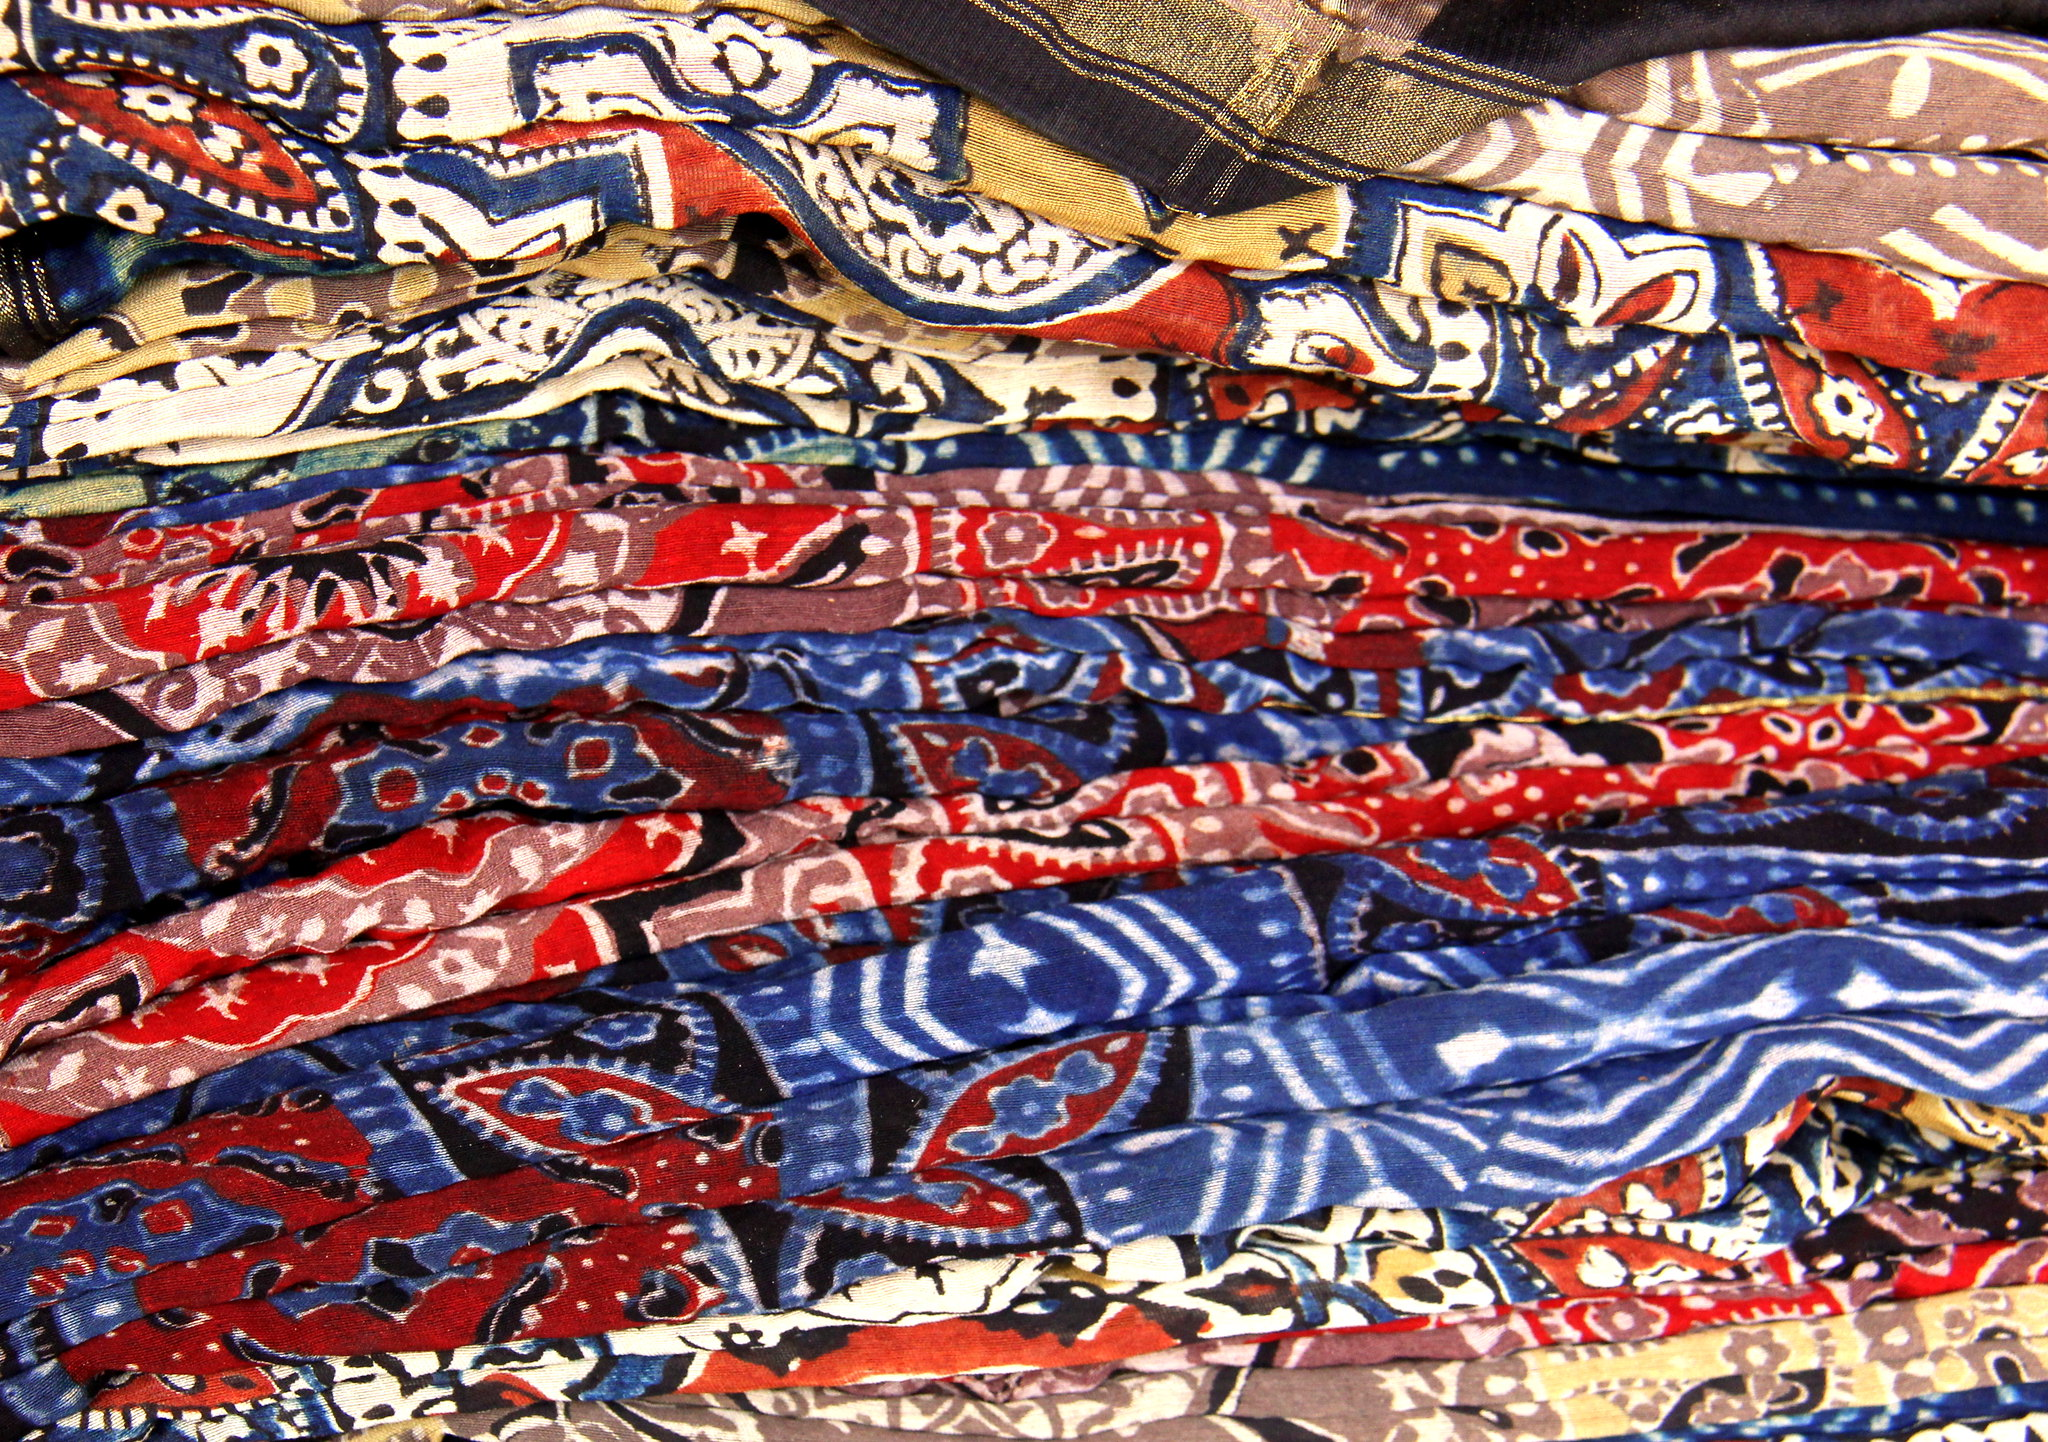 Ajrakh textiles on sale